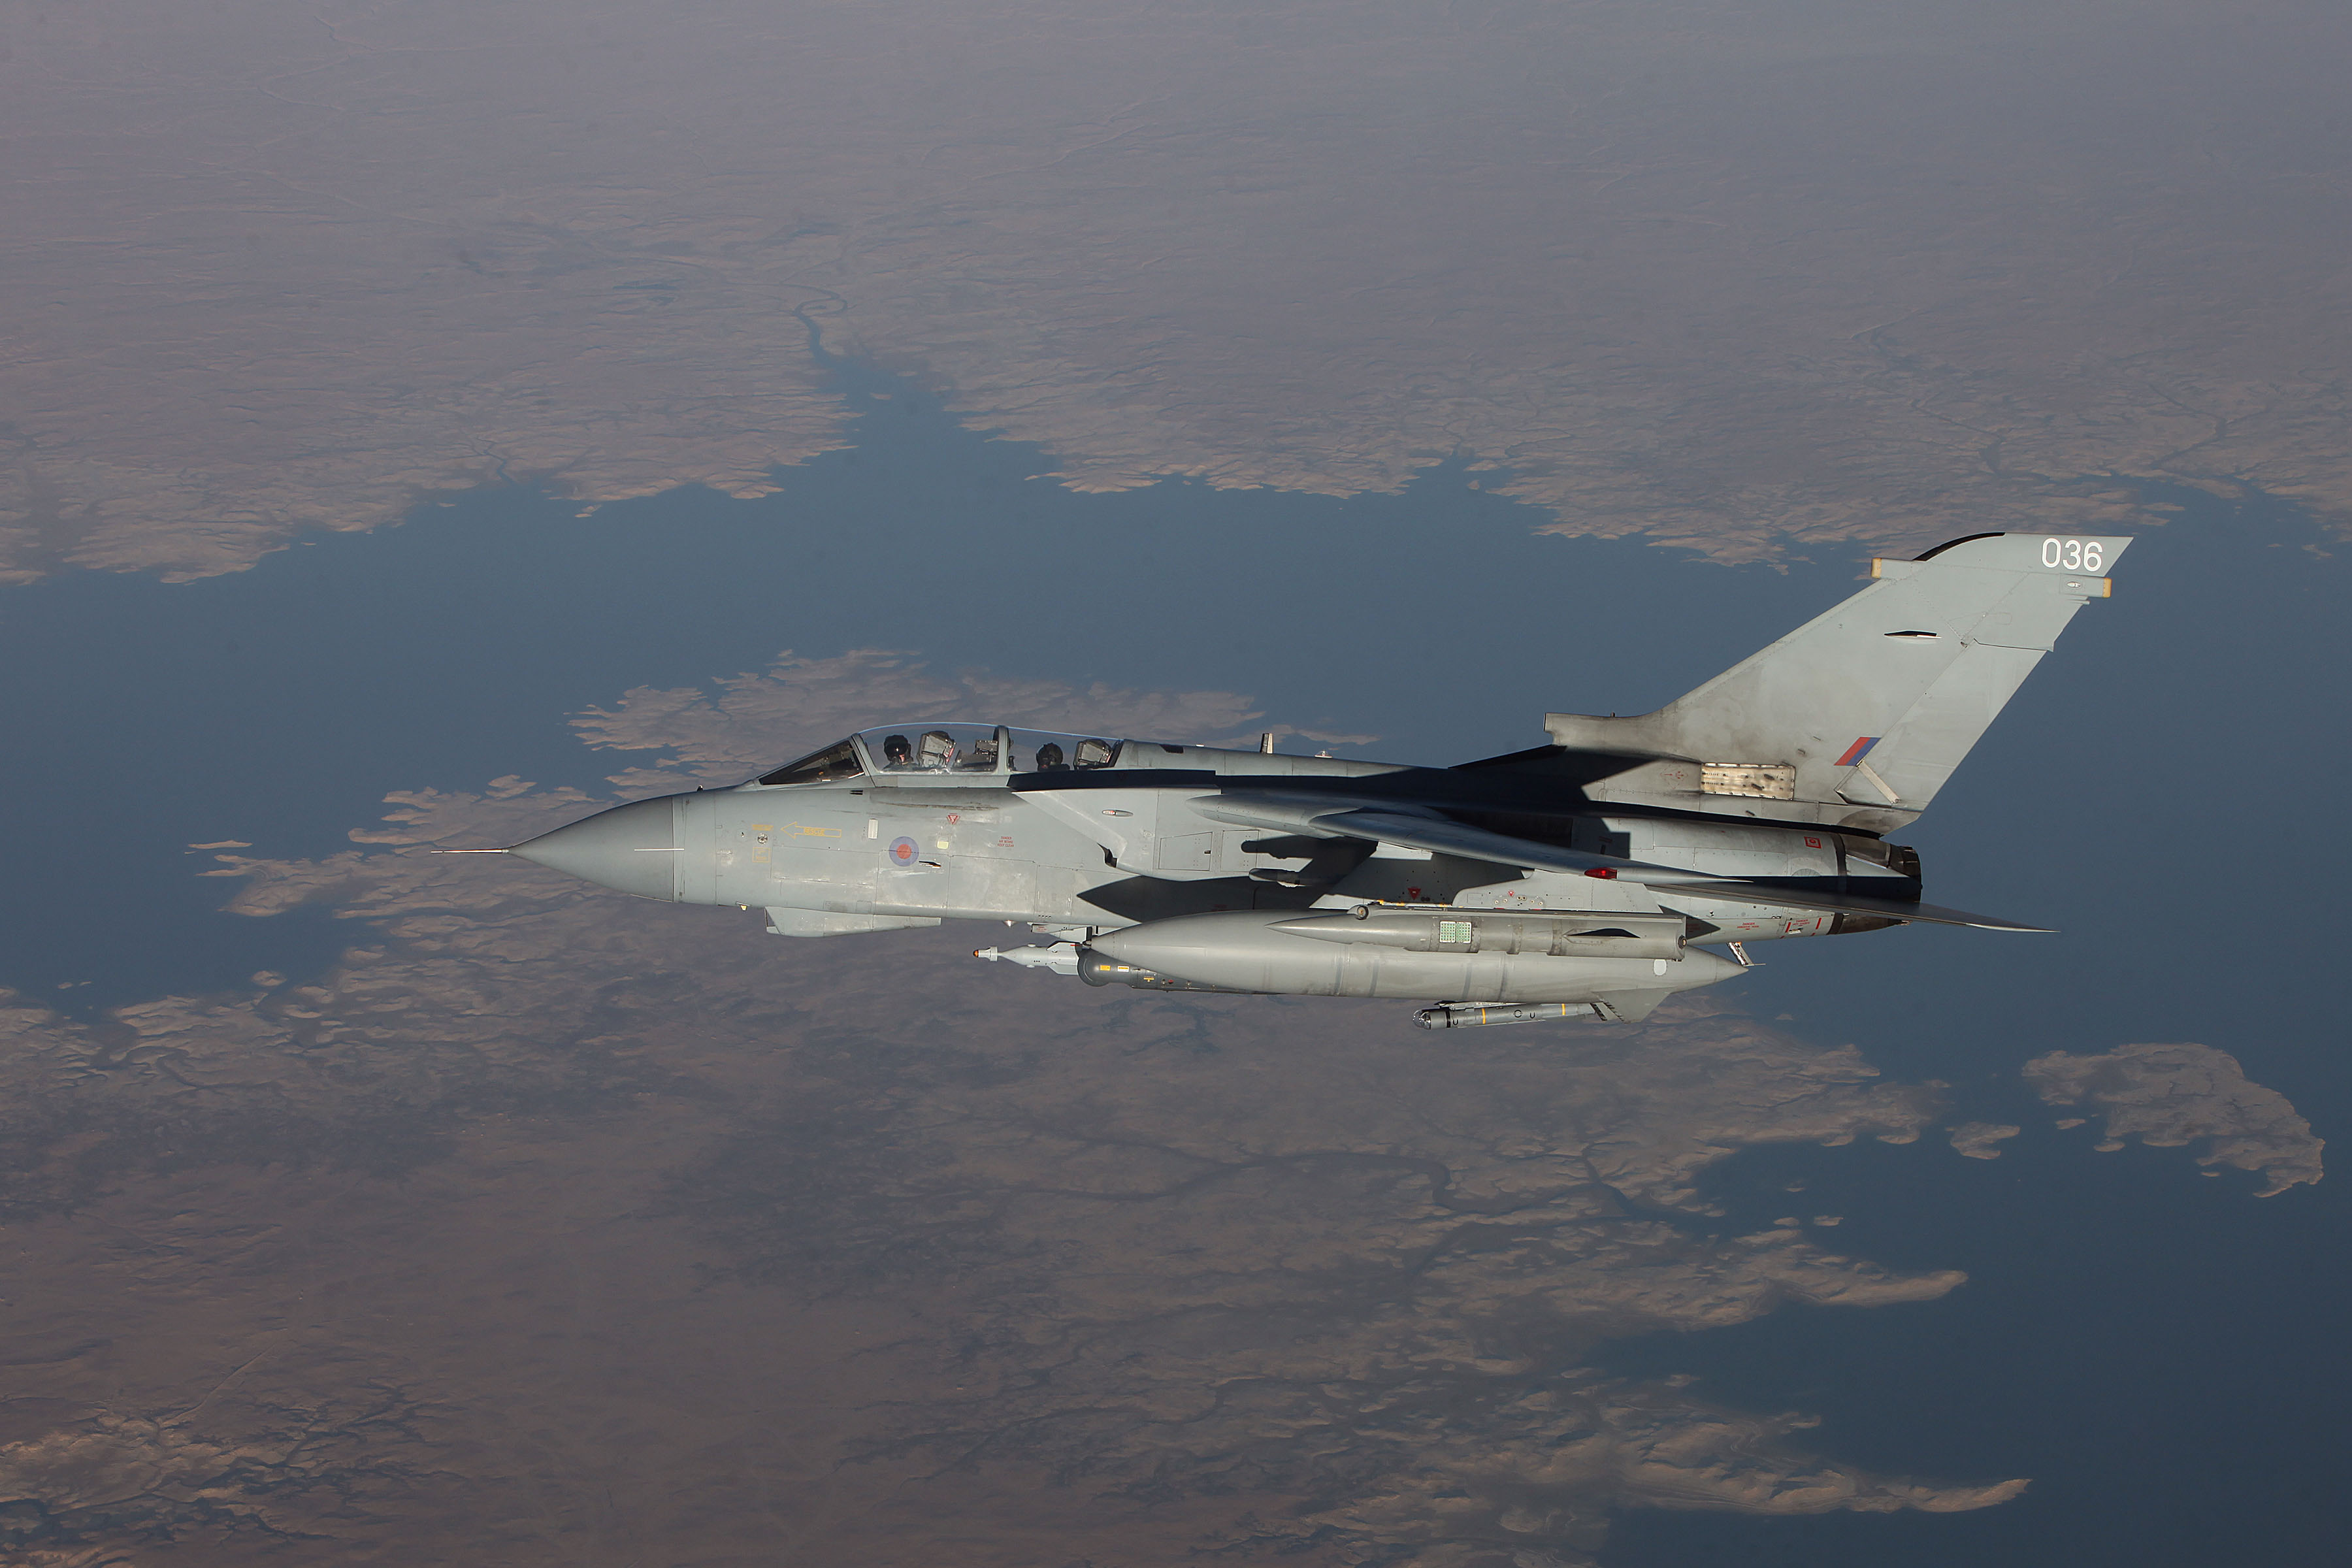 RAF Tornado over Middle East after refueling from a Royal Australian Air Force KC-30A tanker (Australian MoD)